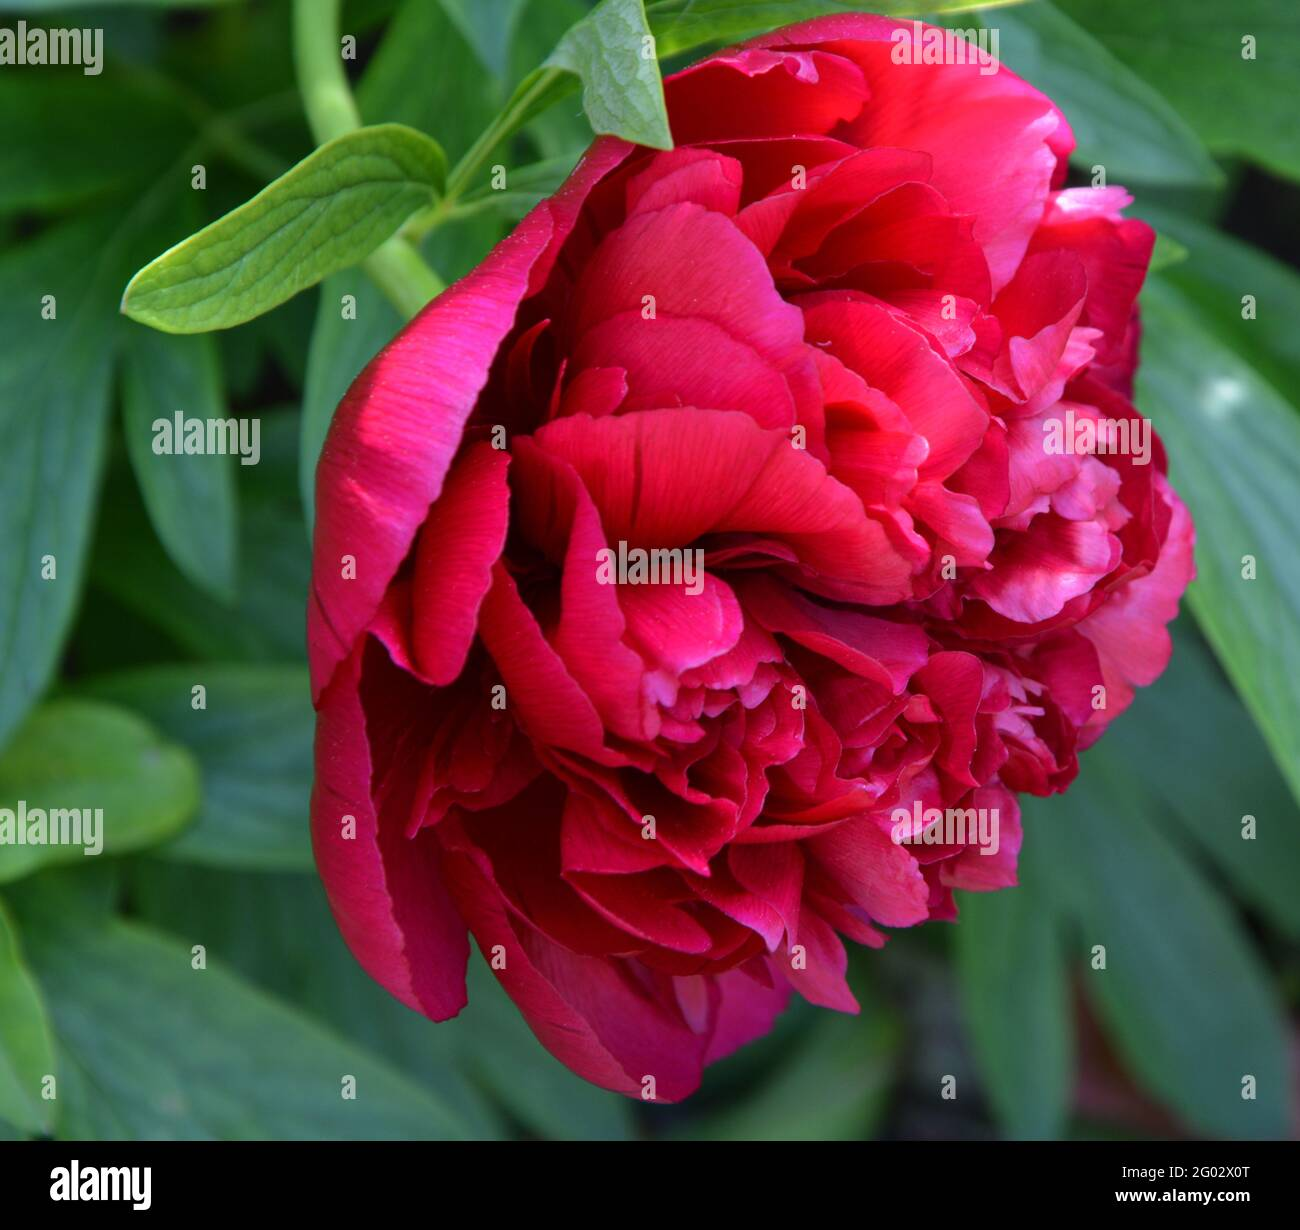 Paeonia Officinalis Rubra Plena, Cambridge, Purely Beautiful and Peaceful Floral Space Stock Photo